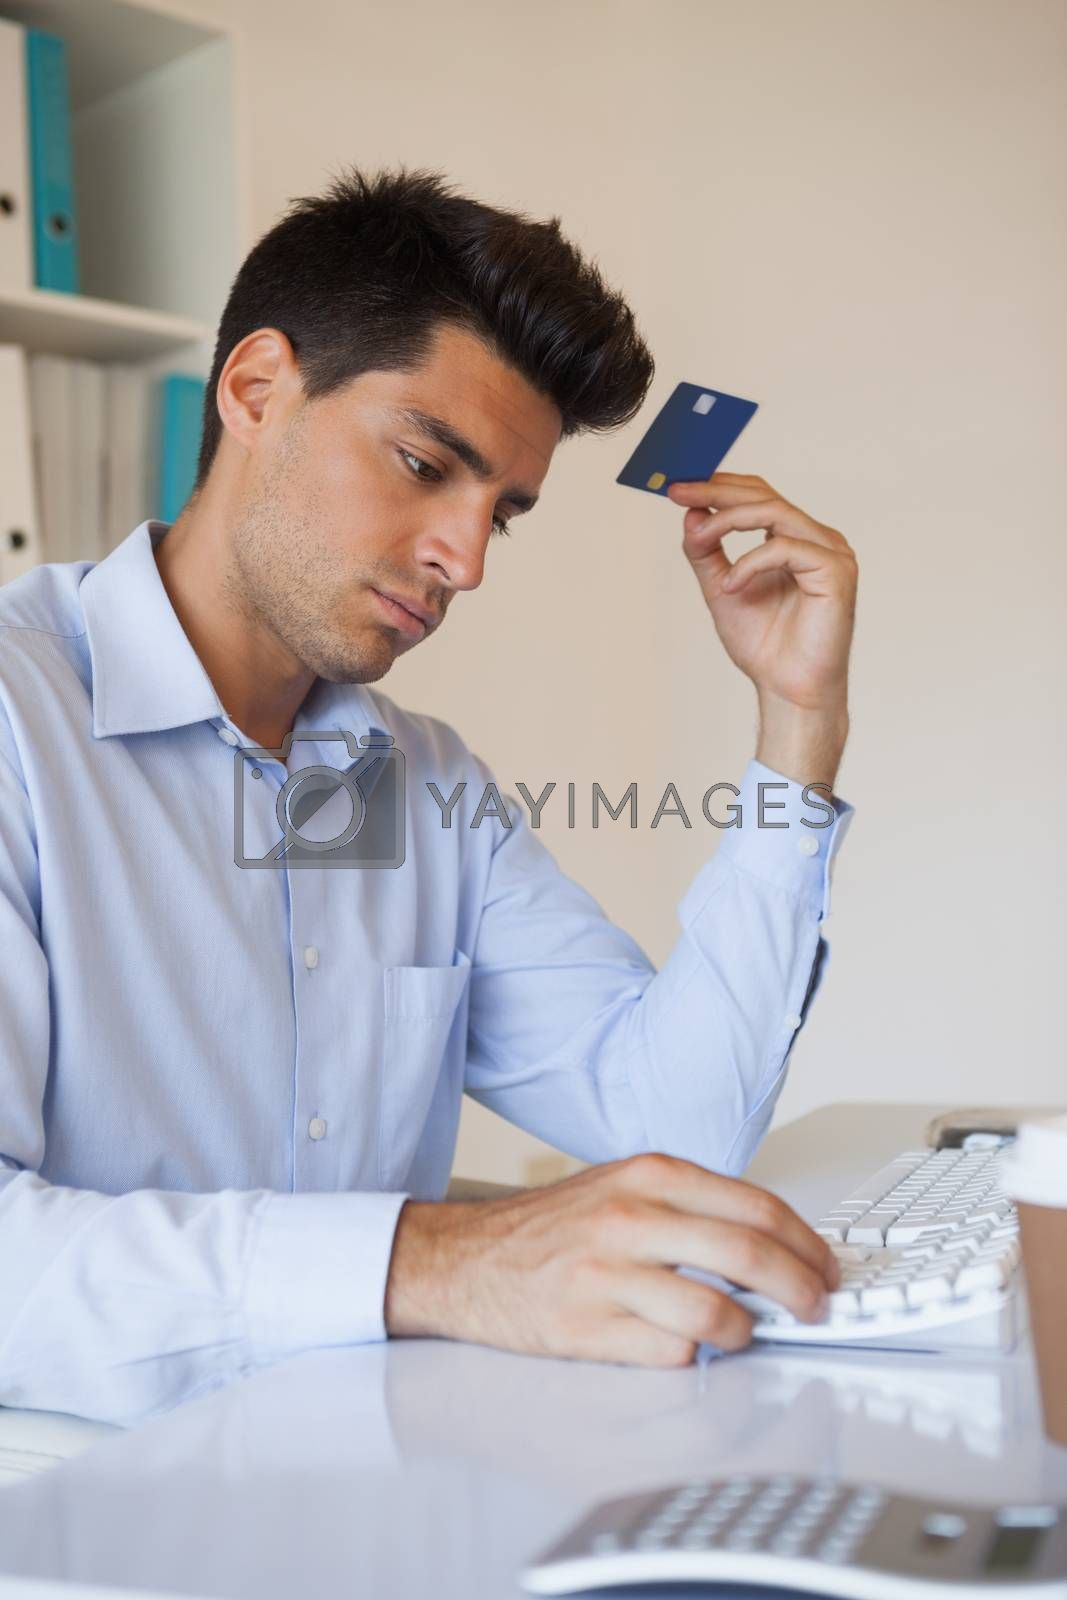 Royalty free image of Casual businessman shopping online at his desk by Wavebreakmedia